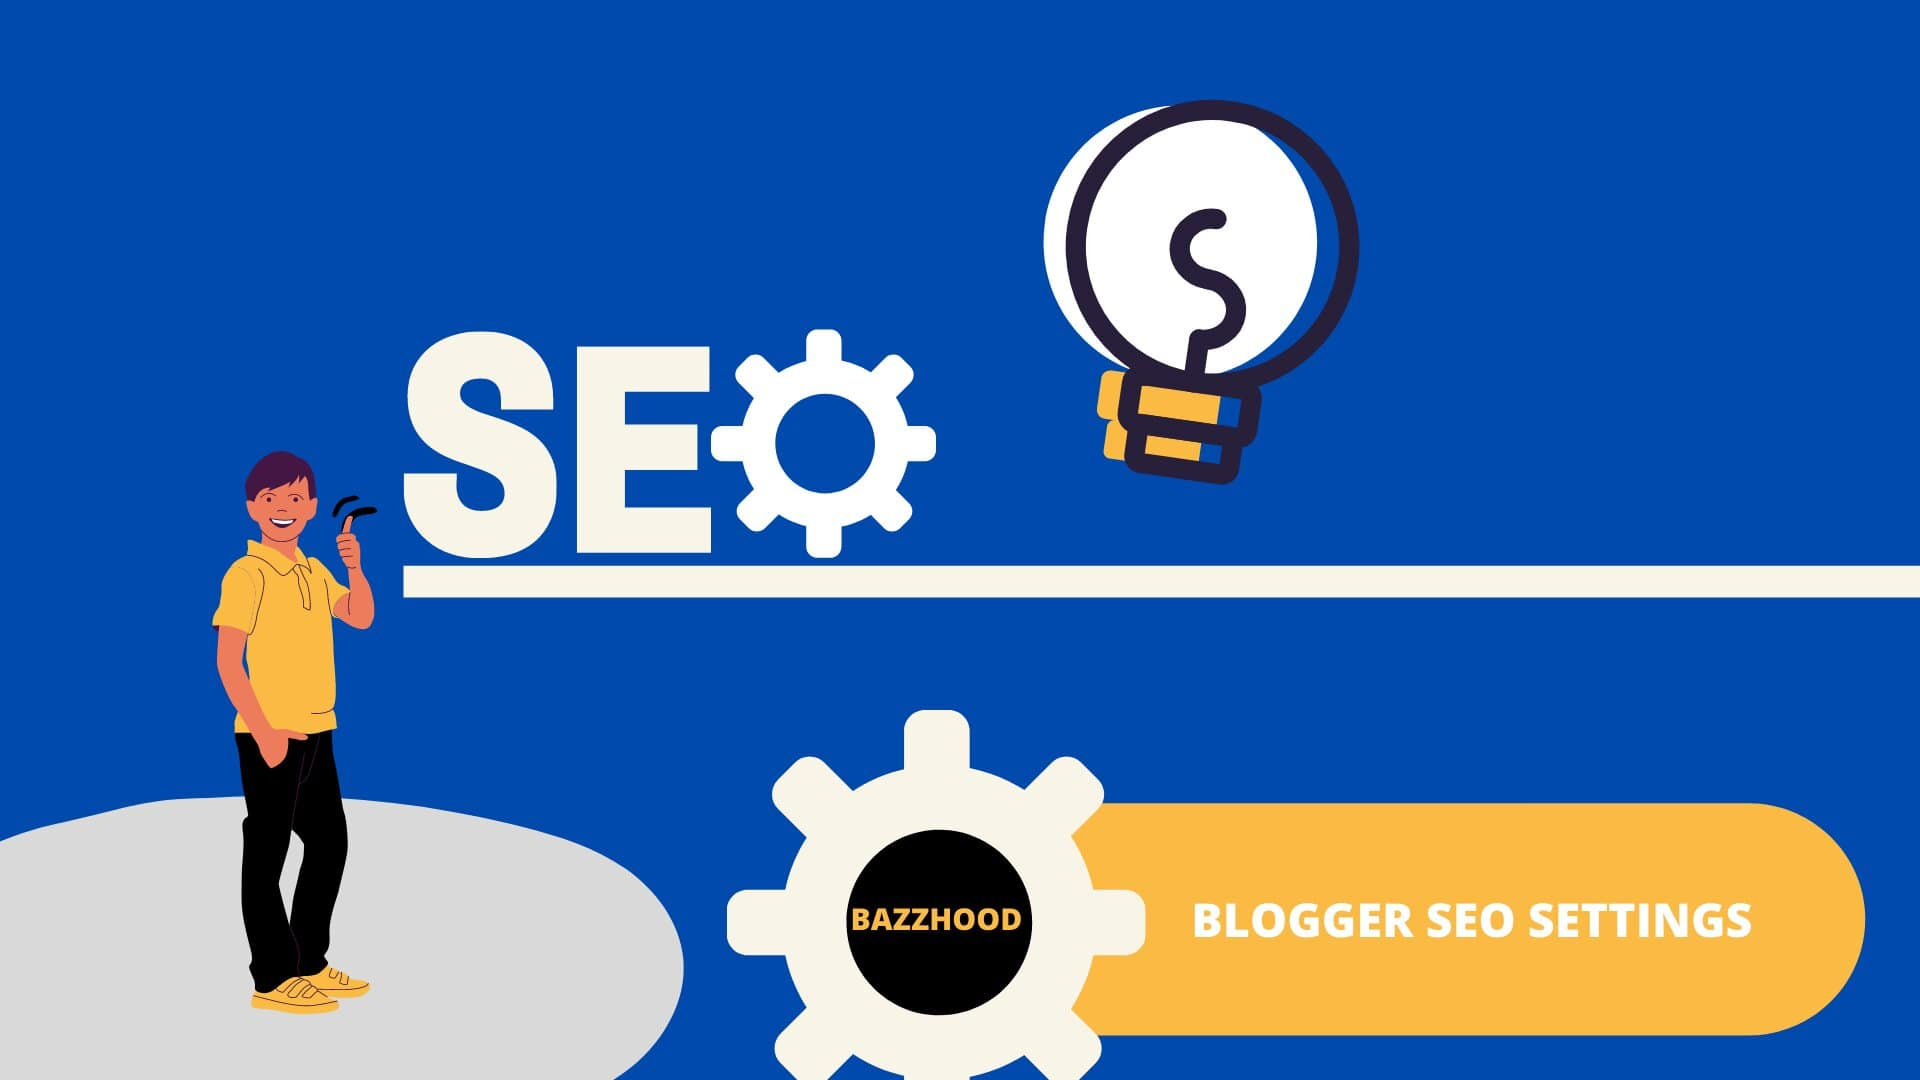 BlogSpot SEO Settings